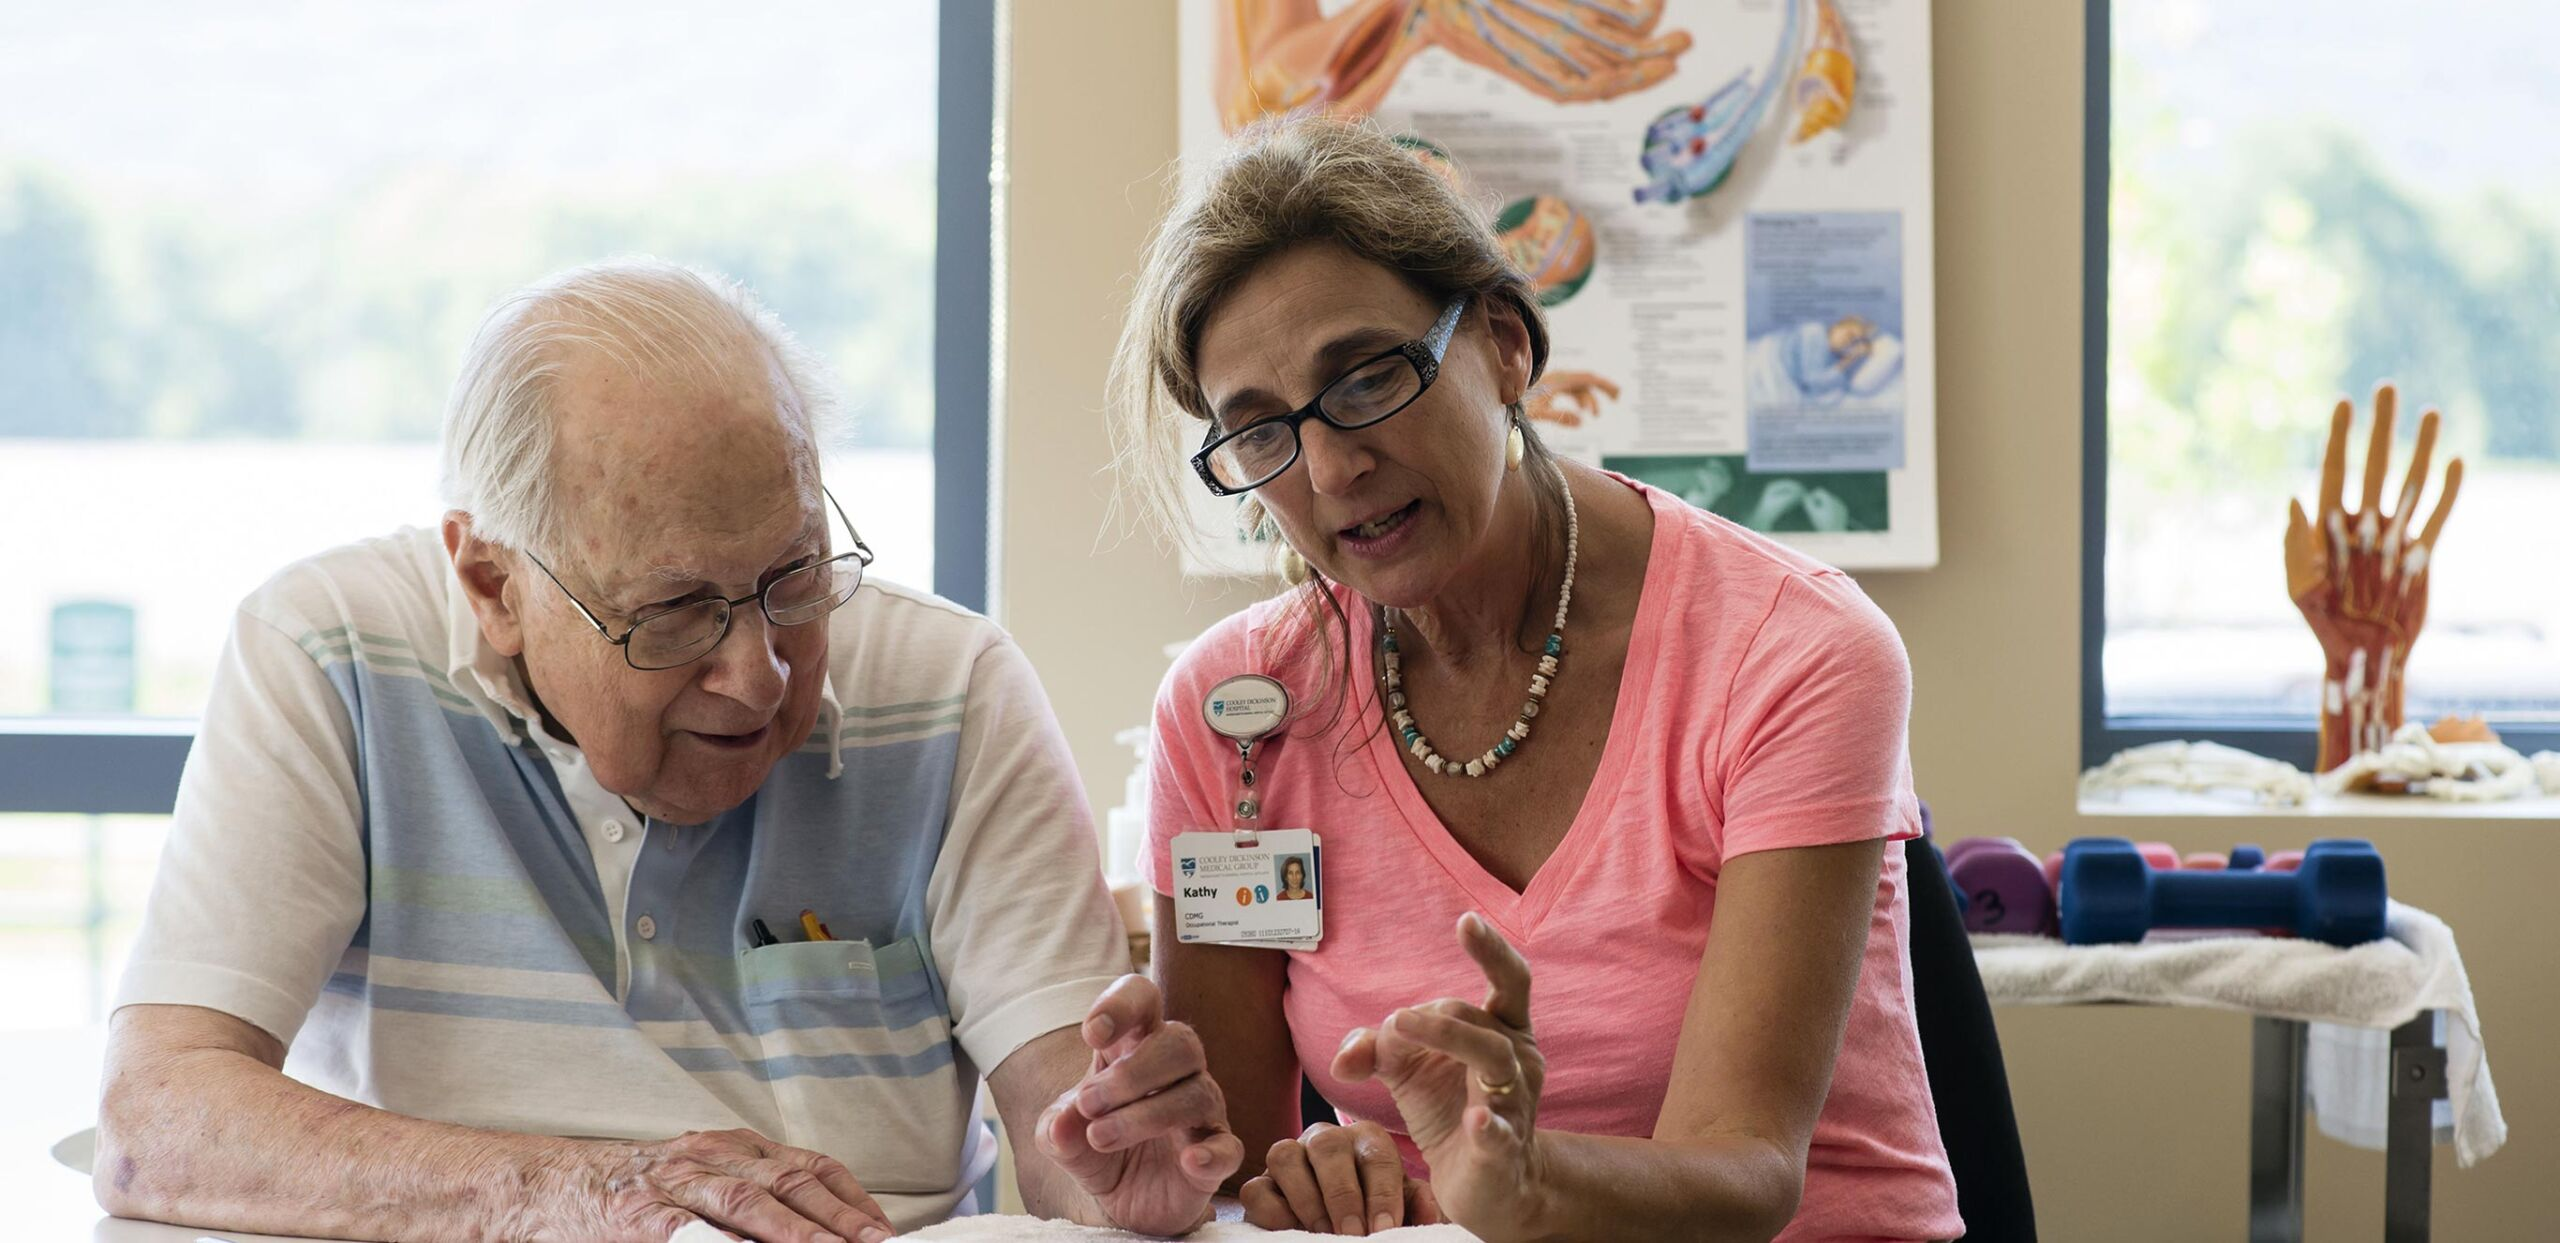 A certified hand therapist helps an elderly patient practice finger-dexterity exercises at Cooley Dickinson Rehabilitation Services, Northampton, MA 01060.